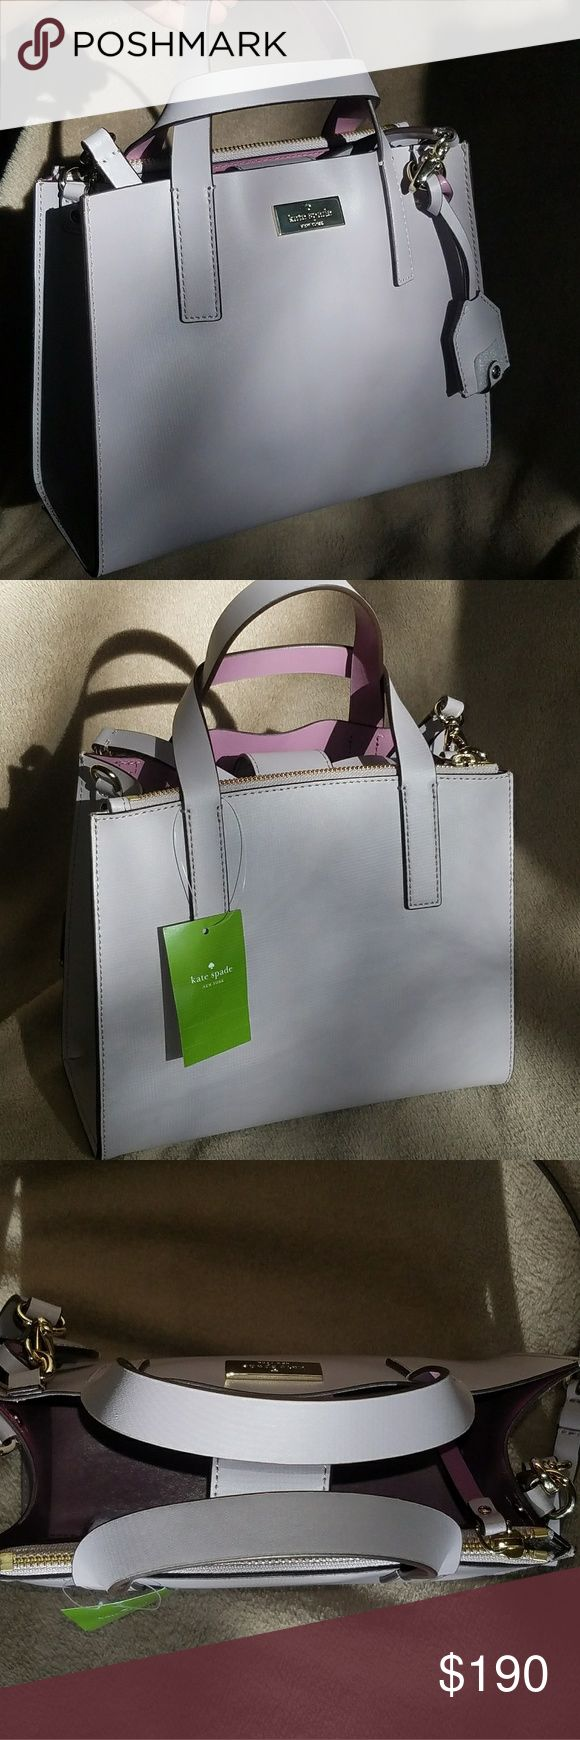 Kate Spade small Anissa bag NWT Kate Spade two-tone small Anissa bag, THE ABSOLUTE CUTEST. This bag features a really soft lavender color on the outside with a really smooth violet color on the inside. This bag has an open middle that shuts close with a strap and a compartment that zips as well. Also can be used as a crossbody. Make an offer  (: kate spade Bags Crossbody Bags